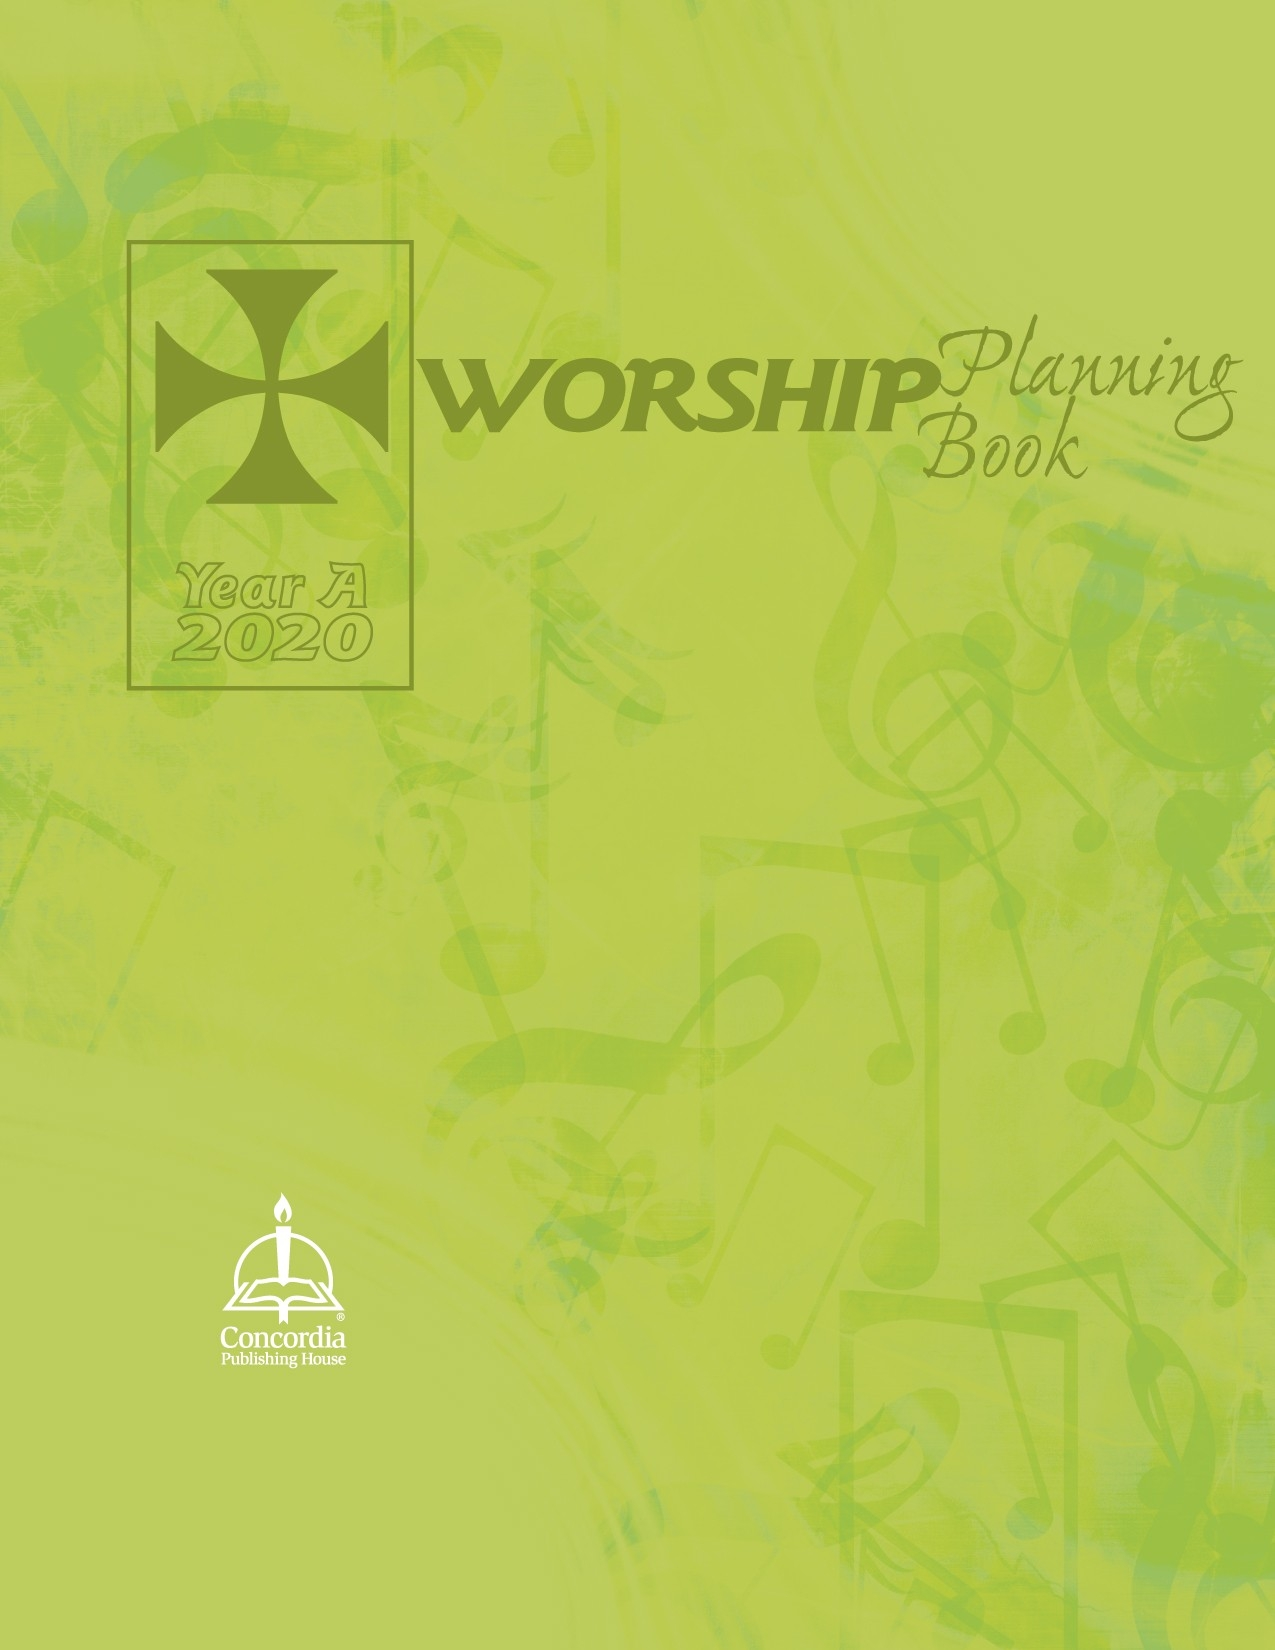 Worship Planning Book: Year A 2020 - Downloadable  Revised Common Lectionary 2020 Sunday And Special Day Only Year A Calendar